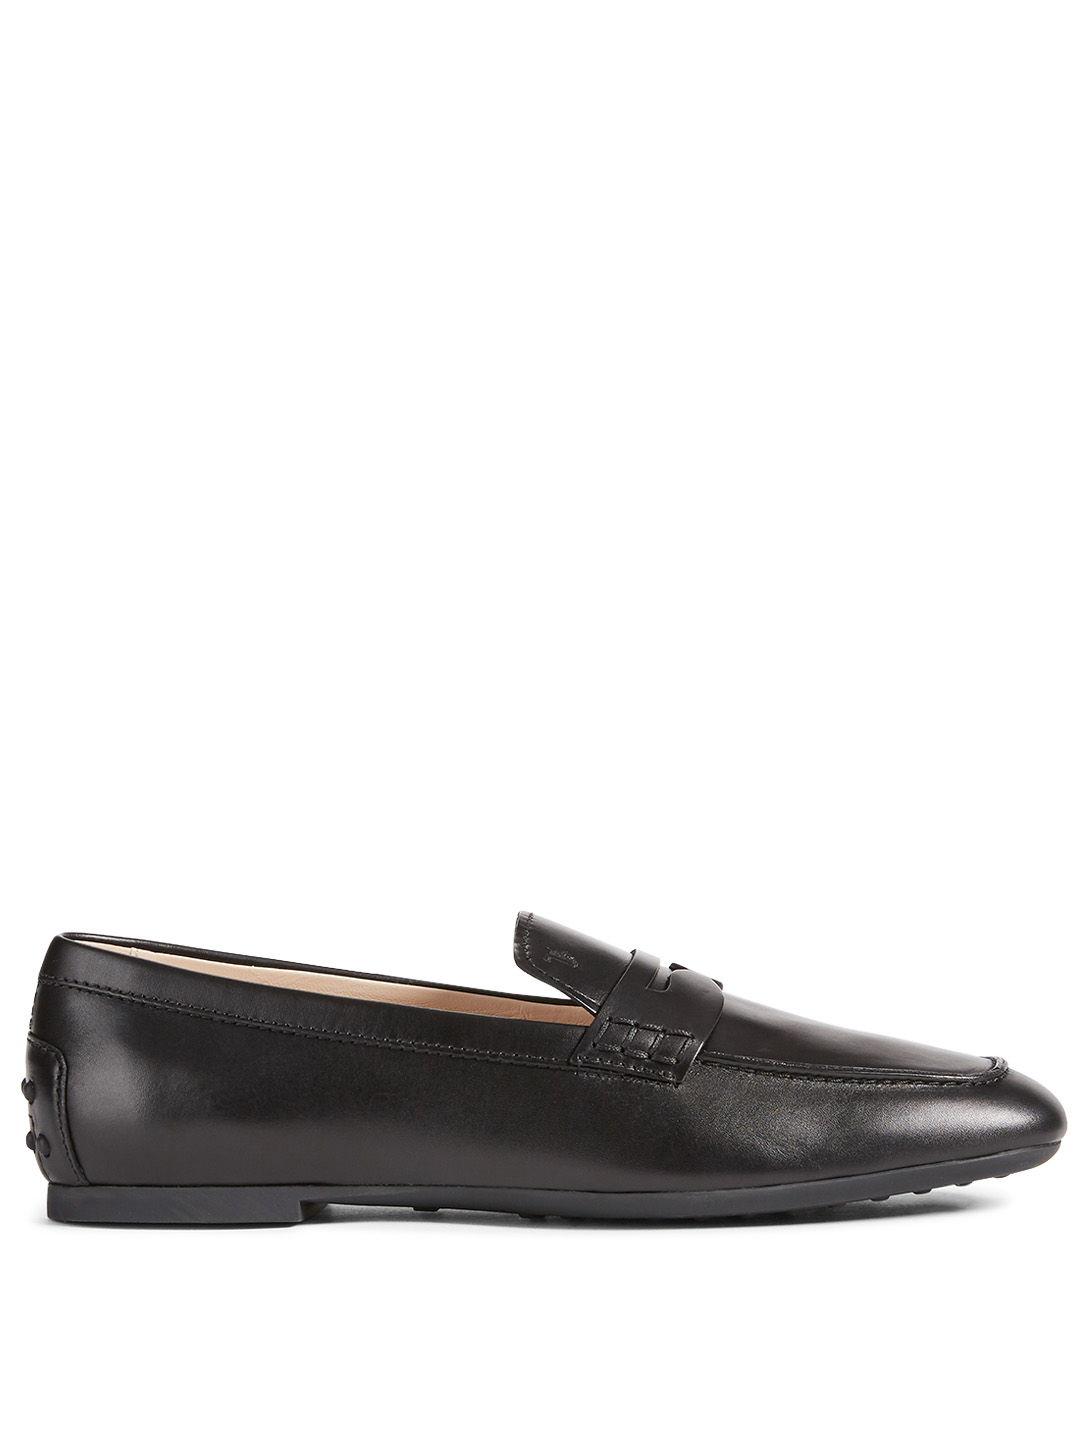 TOD'S Leather Loafers Women's Black